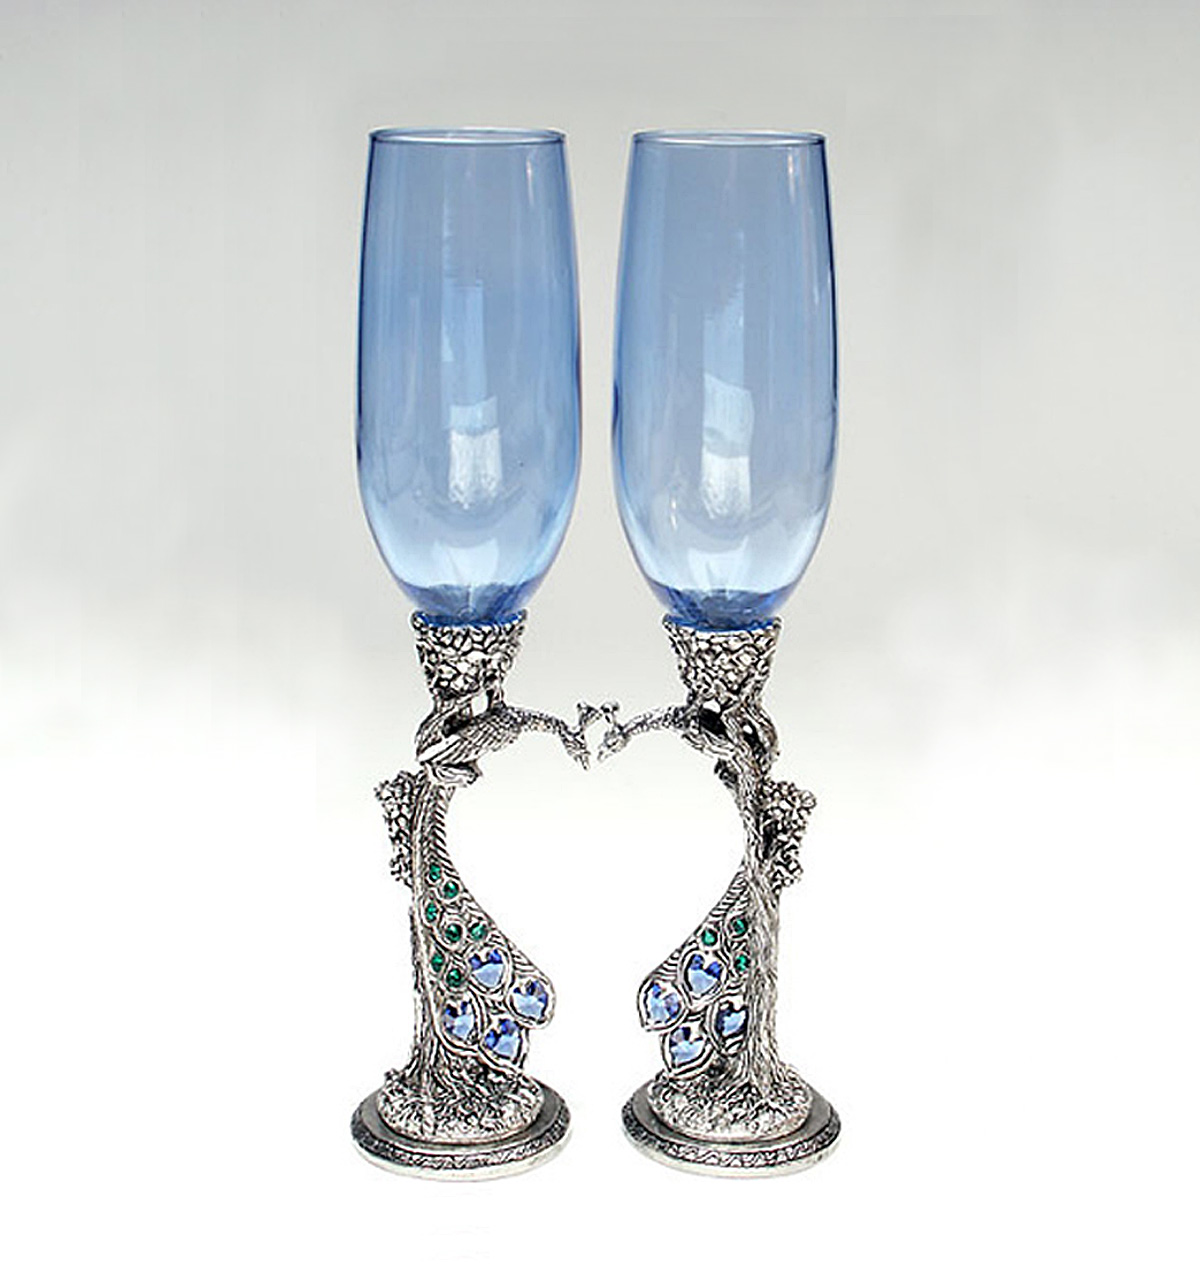 Blue toasting glasses with peacock stems and Austrian crystals